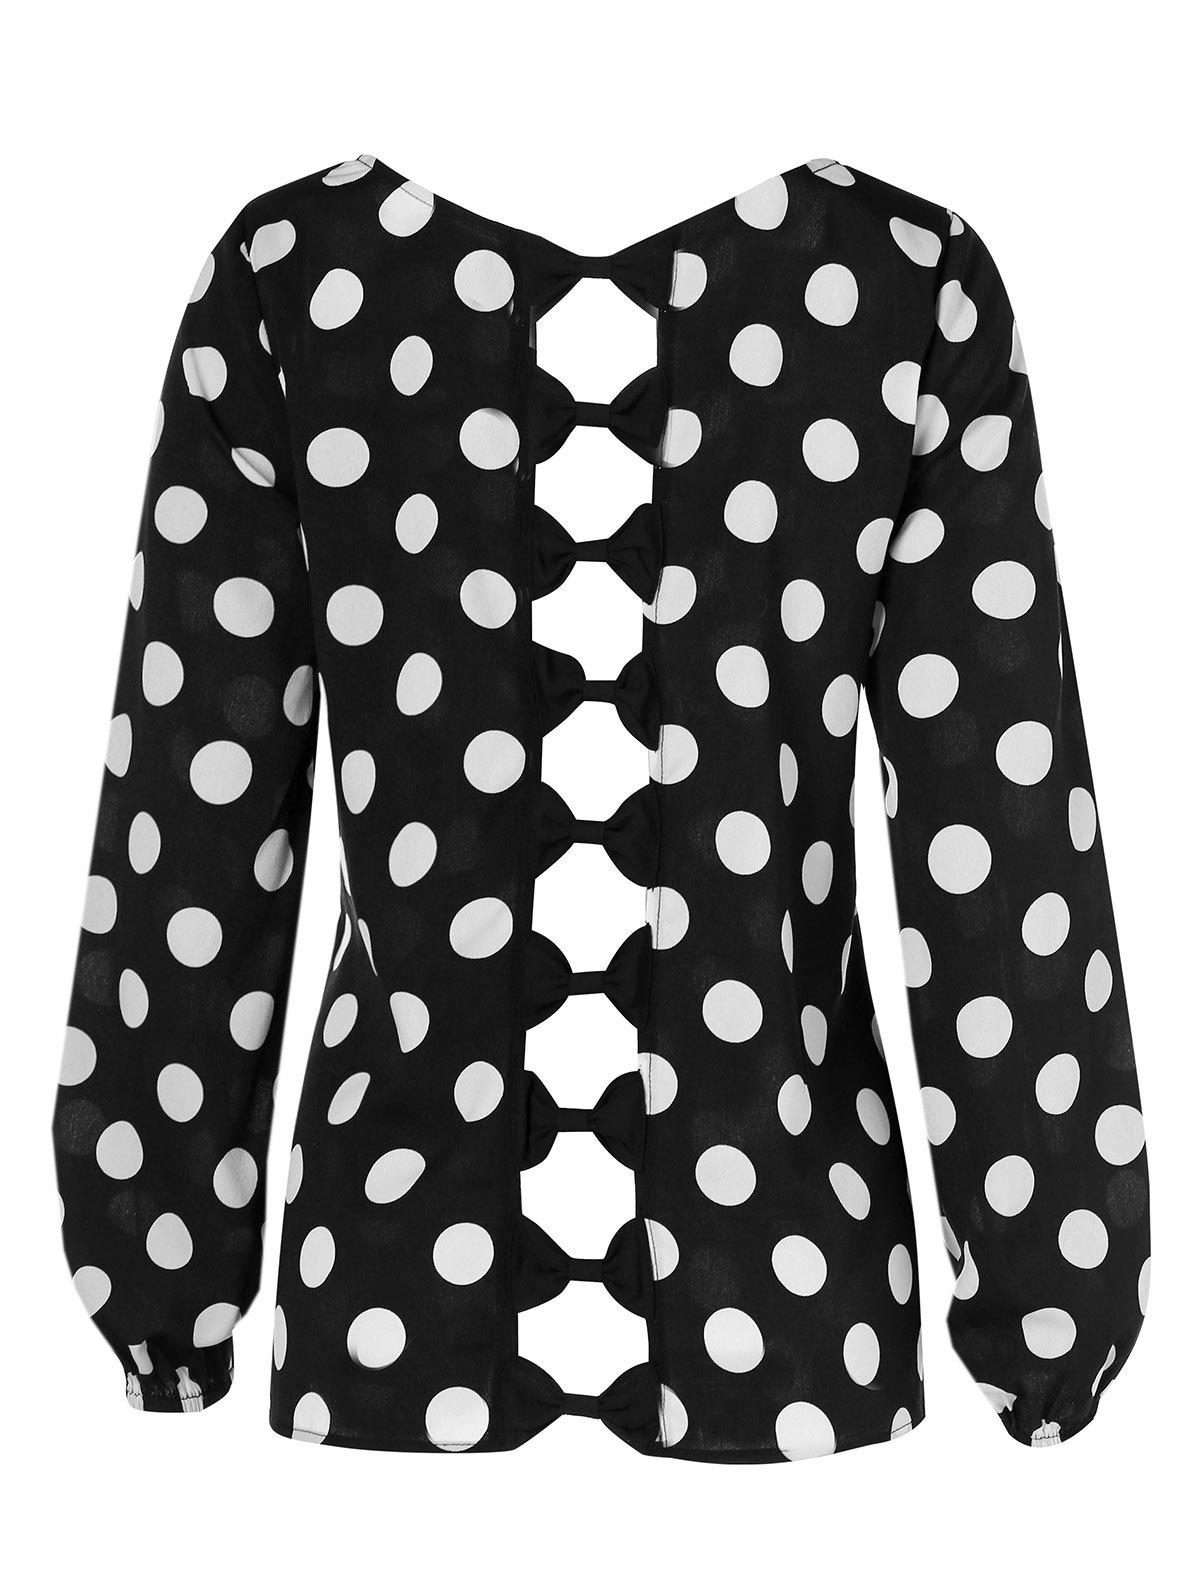 Chic Plus Size Bowknot Cut Out Dotted Blouse